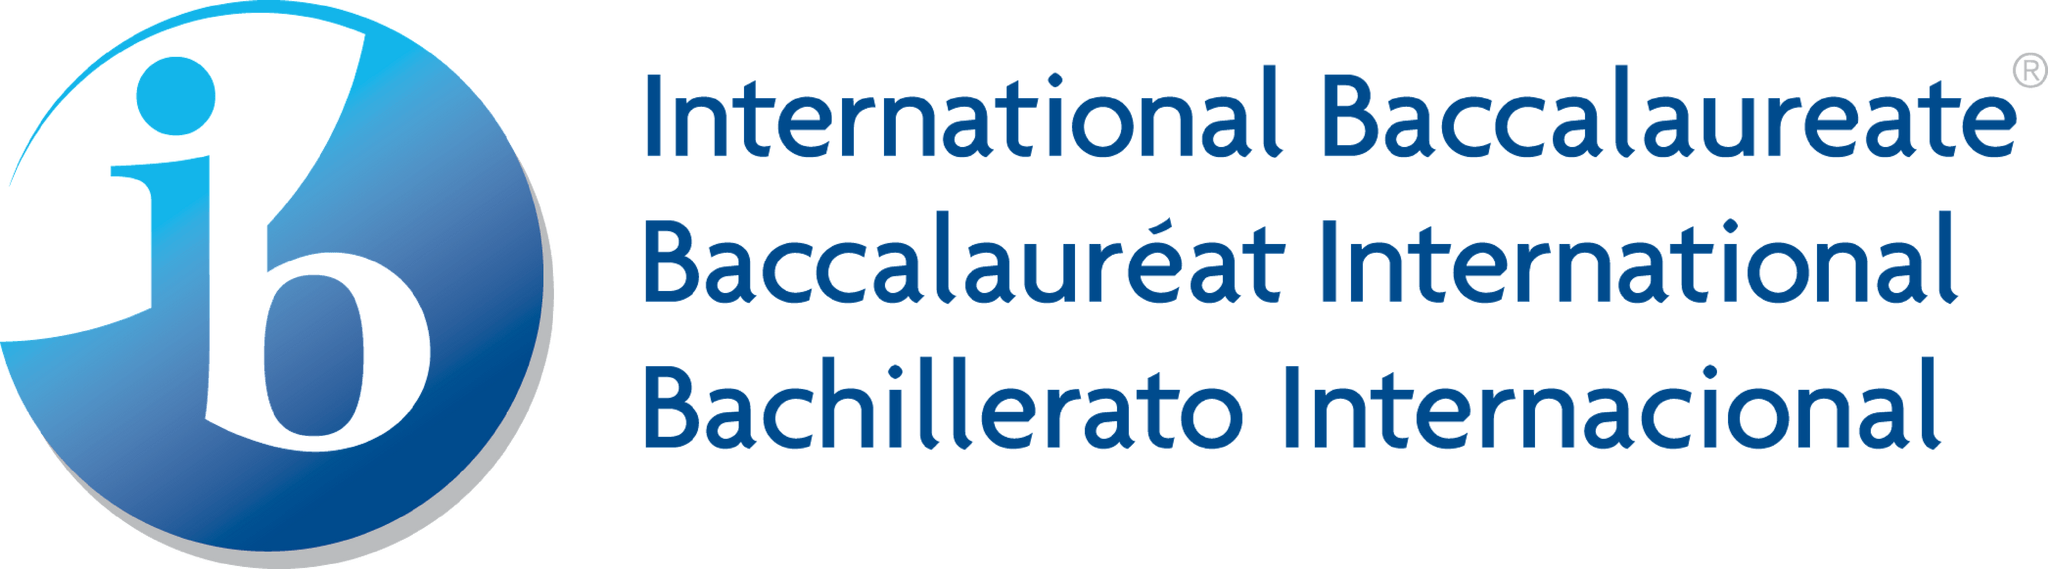 International Baccalaureate® (IB)